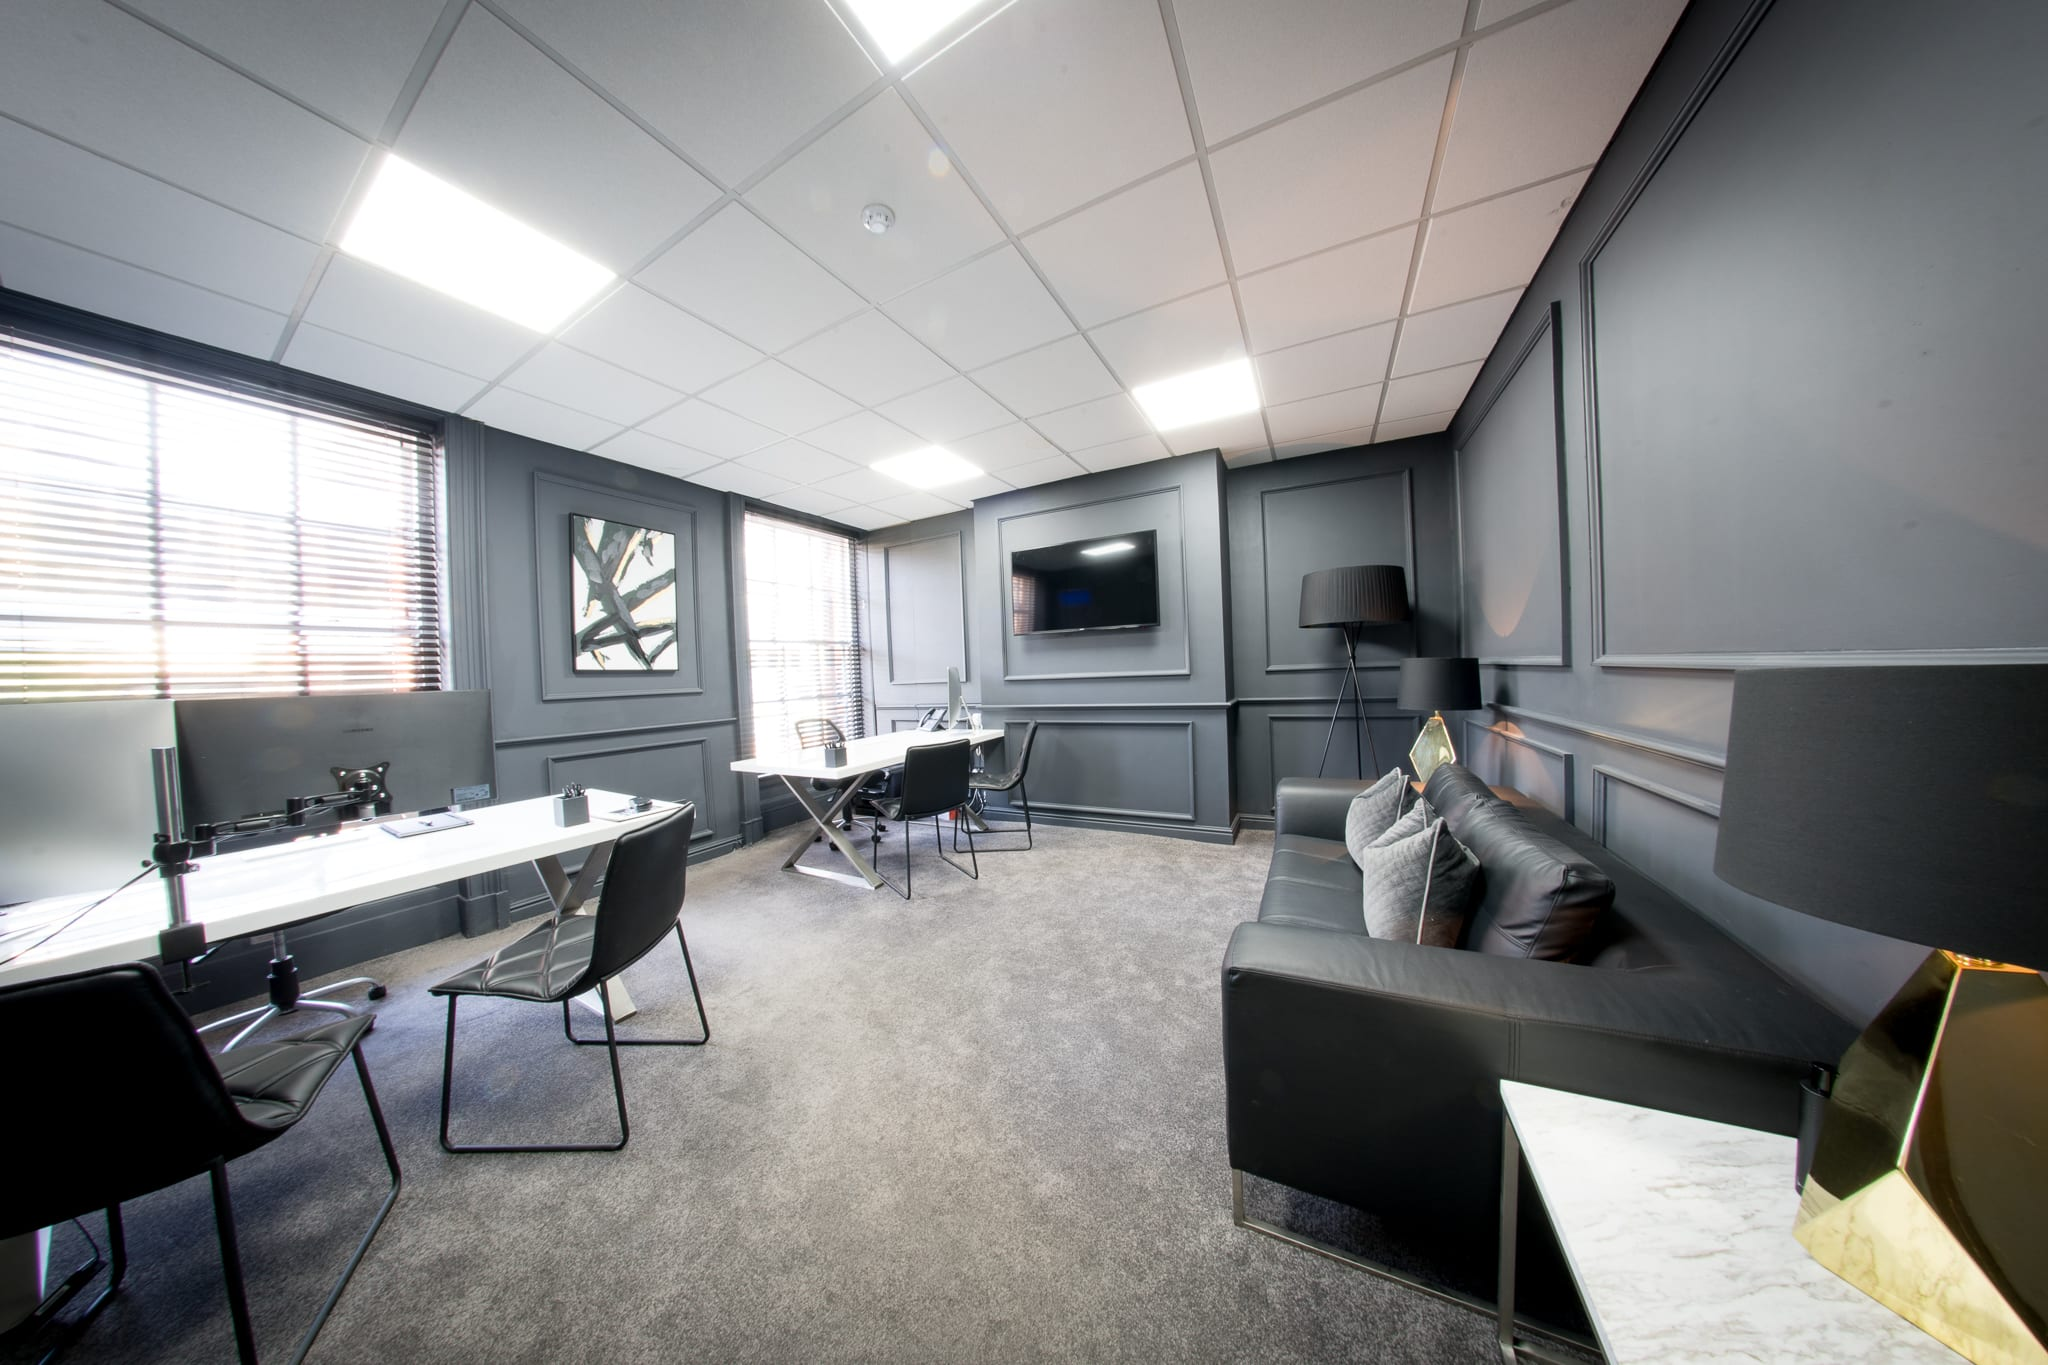 Manchester Office Space - Hliton House Room 3